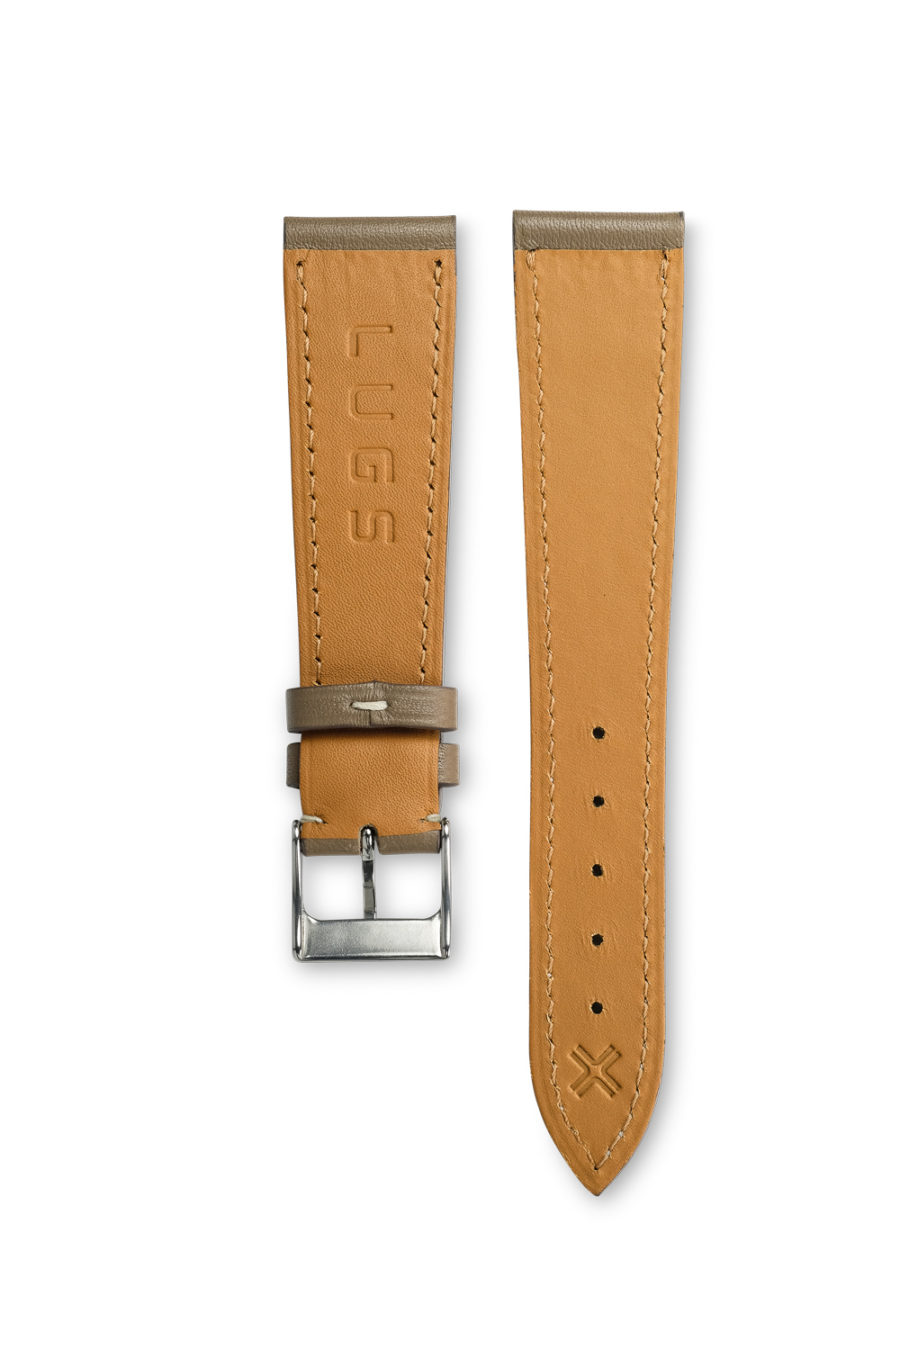 Smooth Classic Taupe Grey leather watch strap - cream stitching - LUGS brand